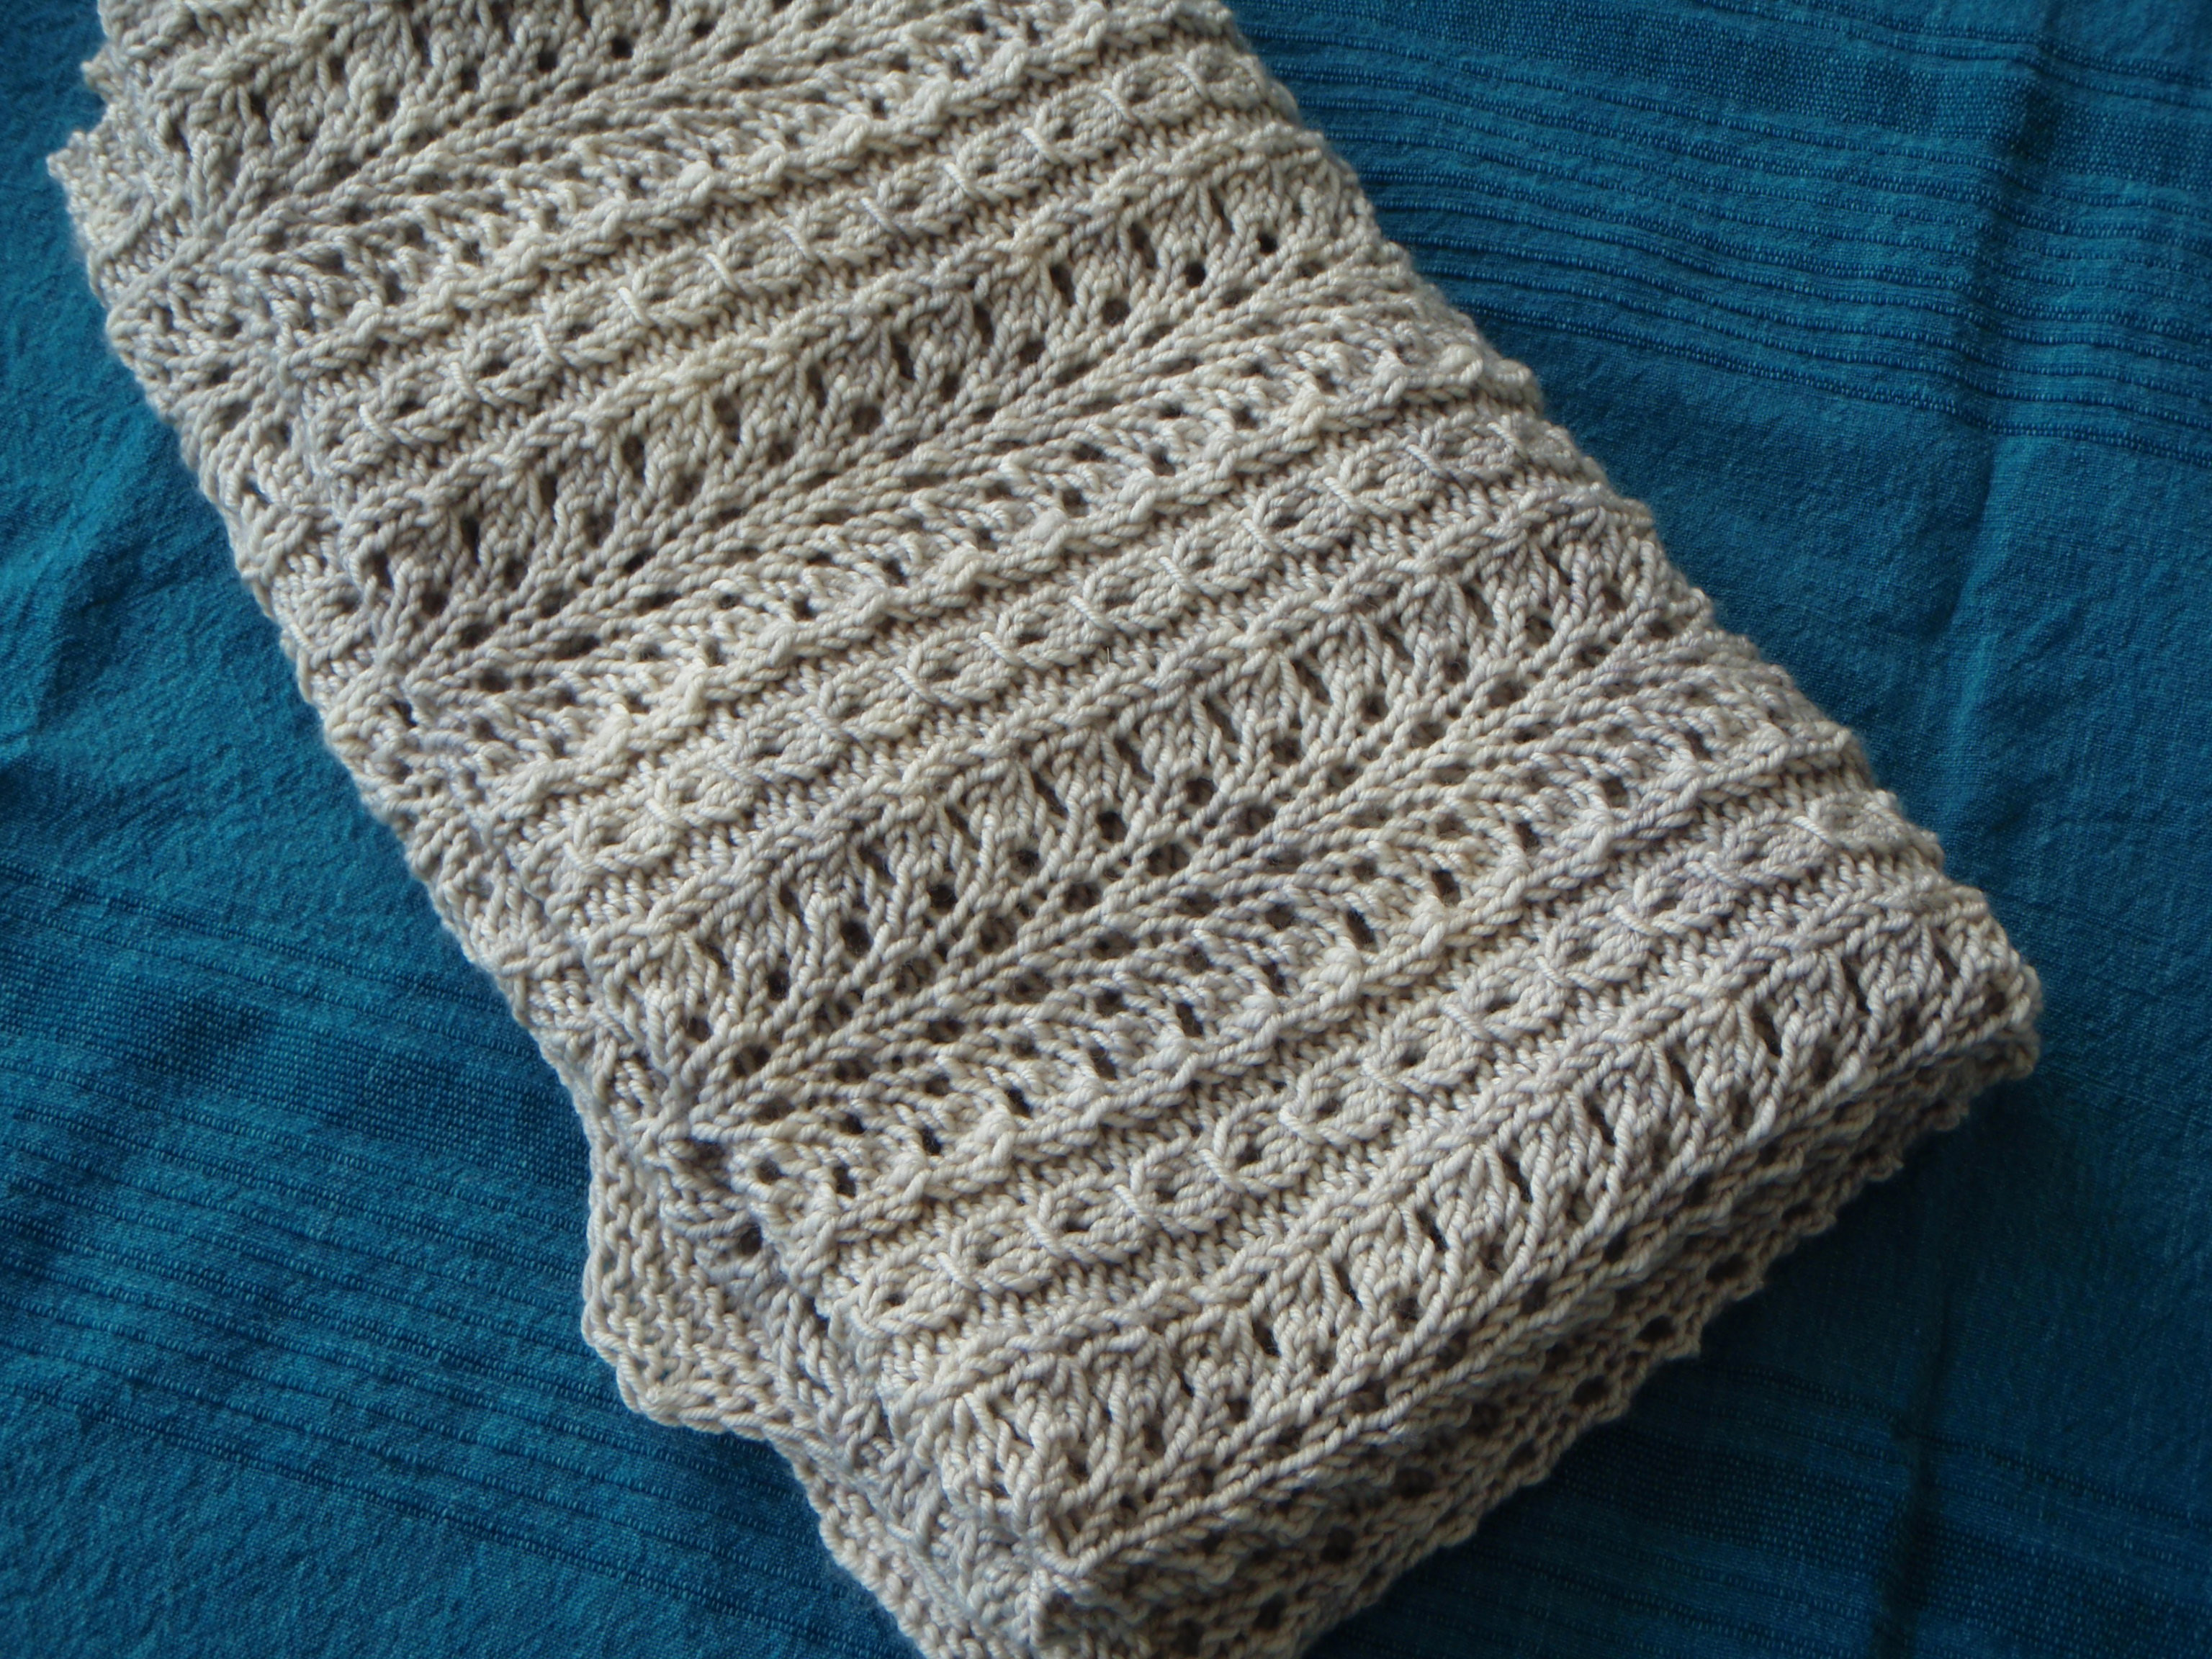 Knitted Baby Blanket Beautiful Shale Baby Blanket Of Amazing 46 Pictures Knitted Baby Blanket